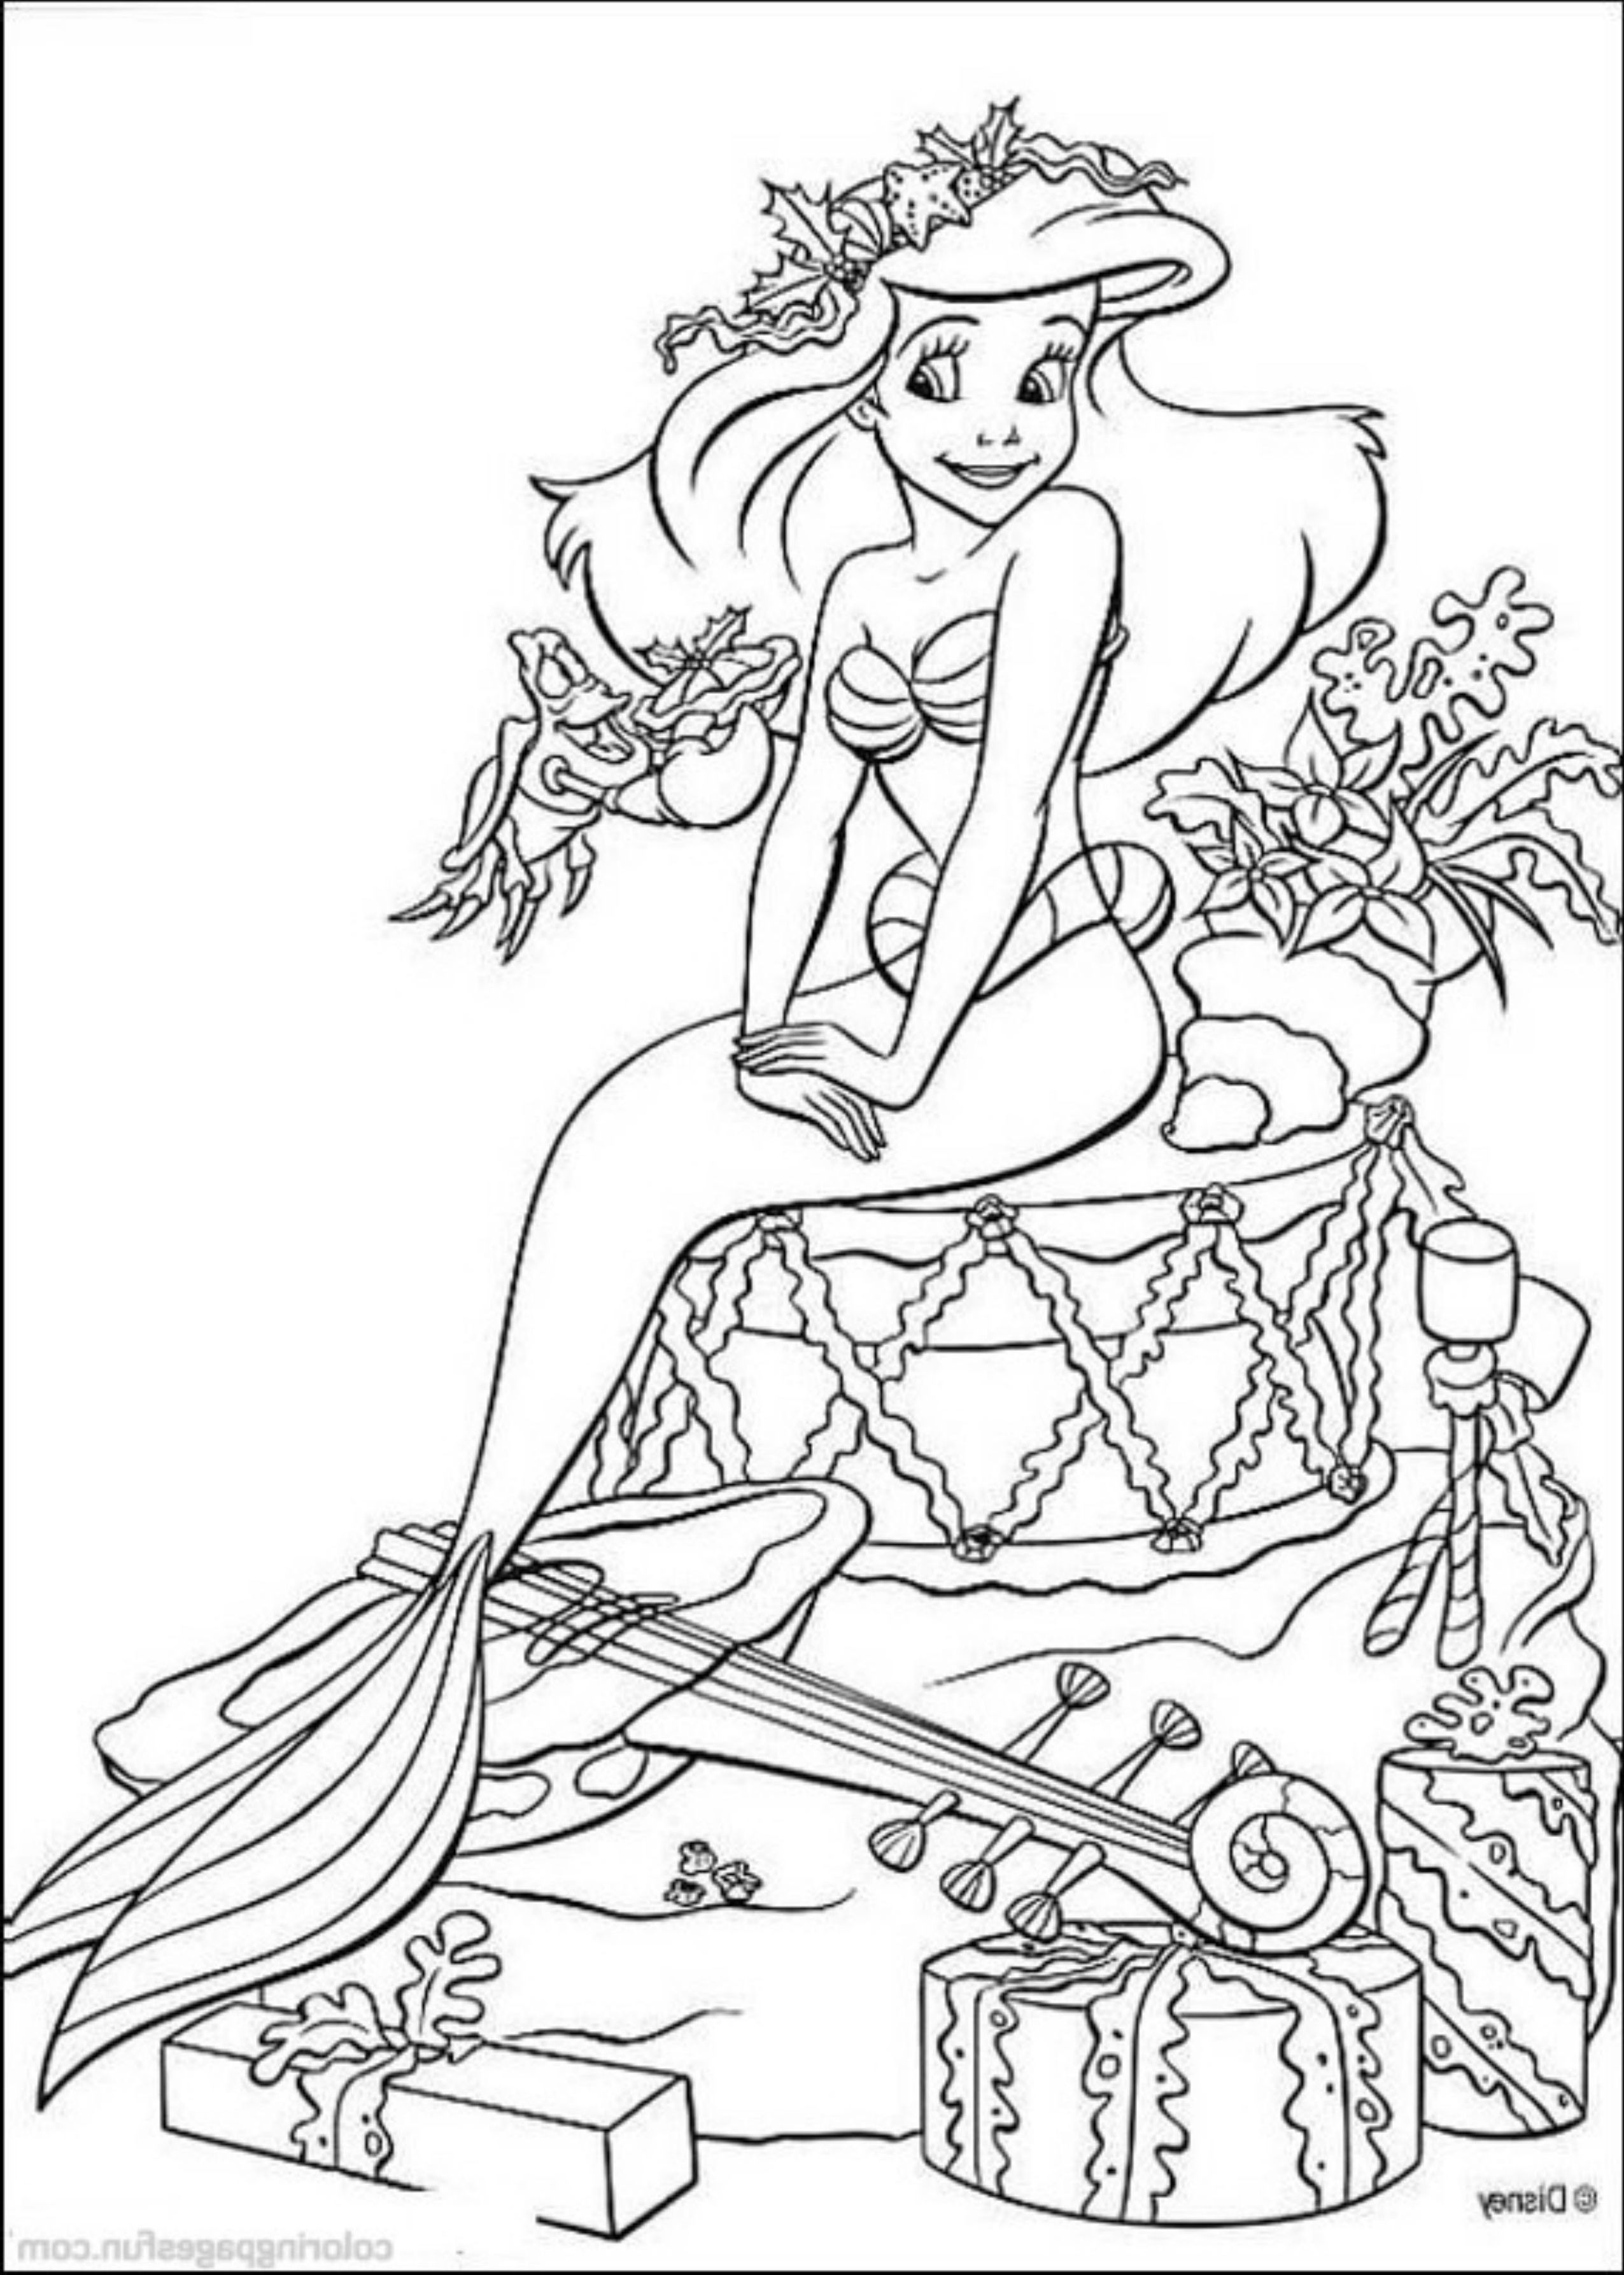 ursula coloring pages ursula little mermaid coloring pages coloring home ursula coloring pages